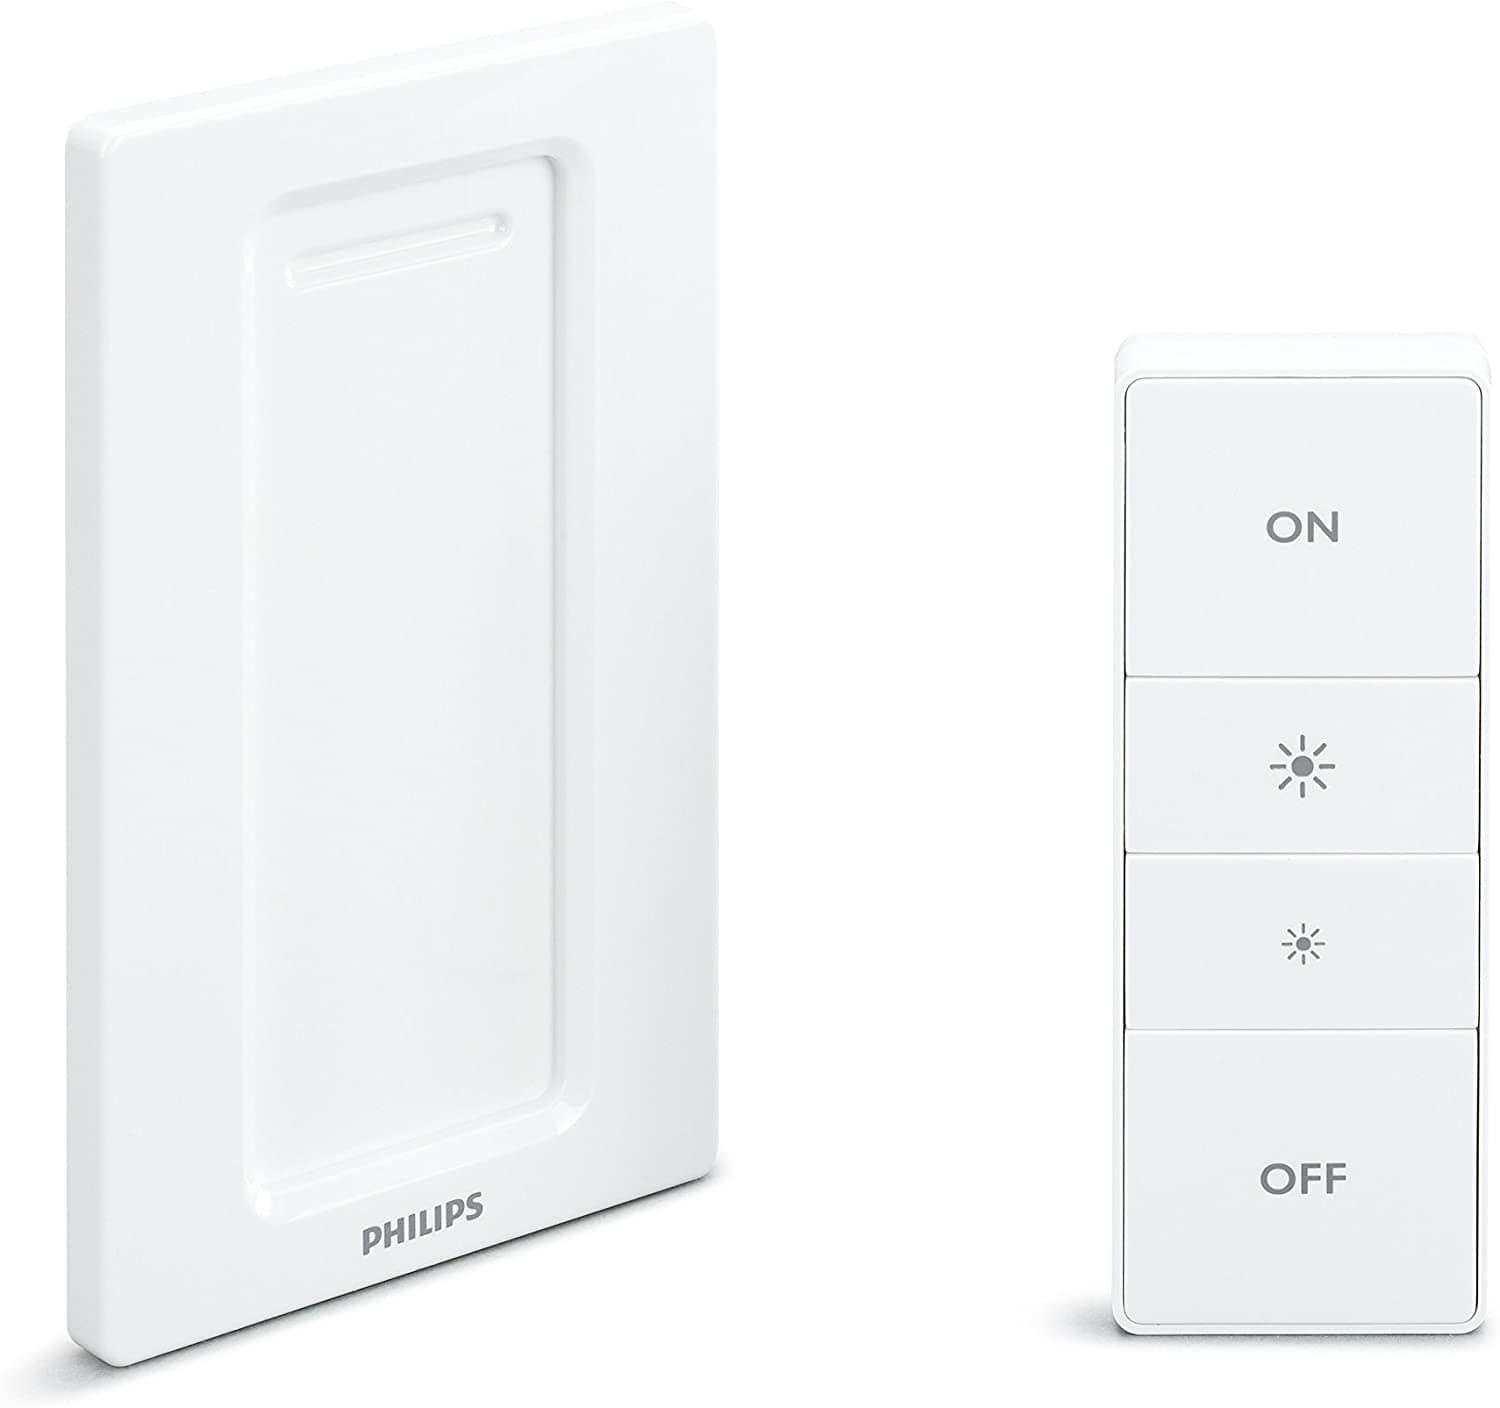 Philips Hue Smart Dimmer Switch